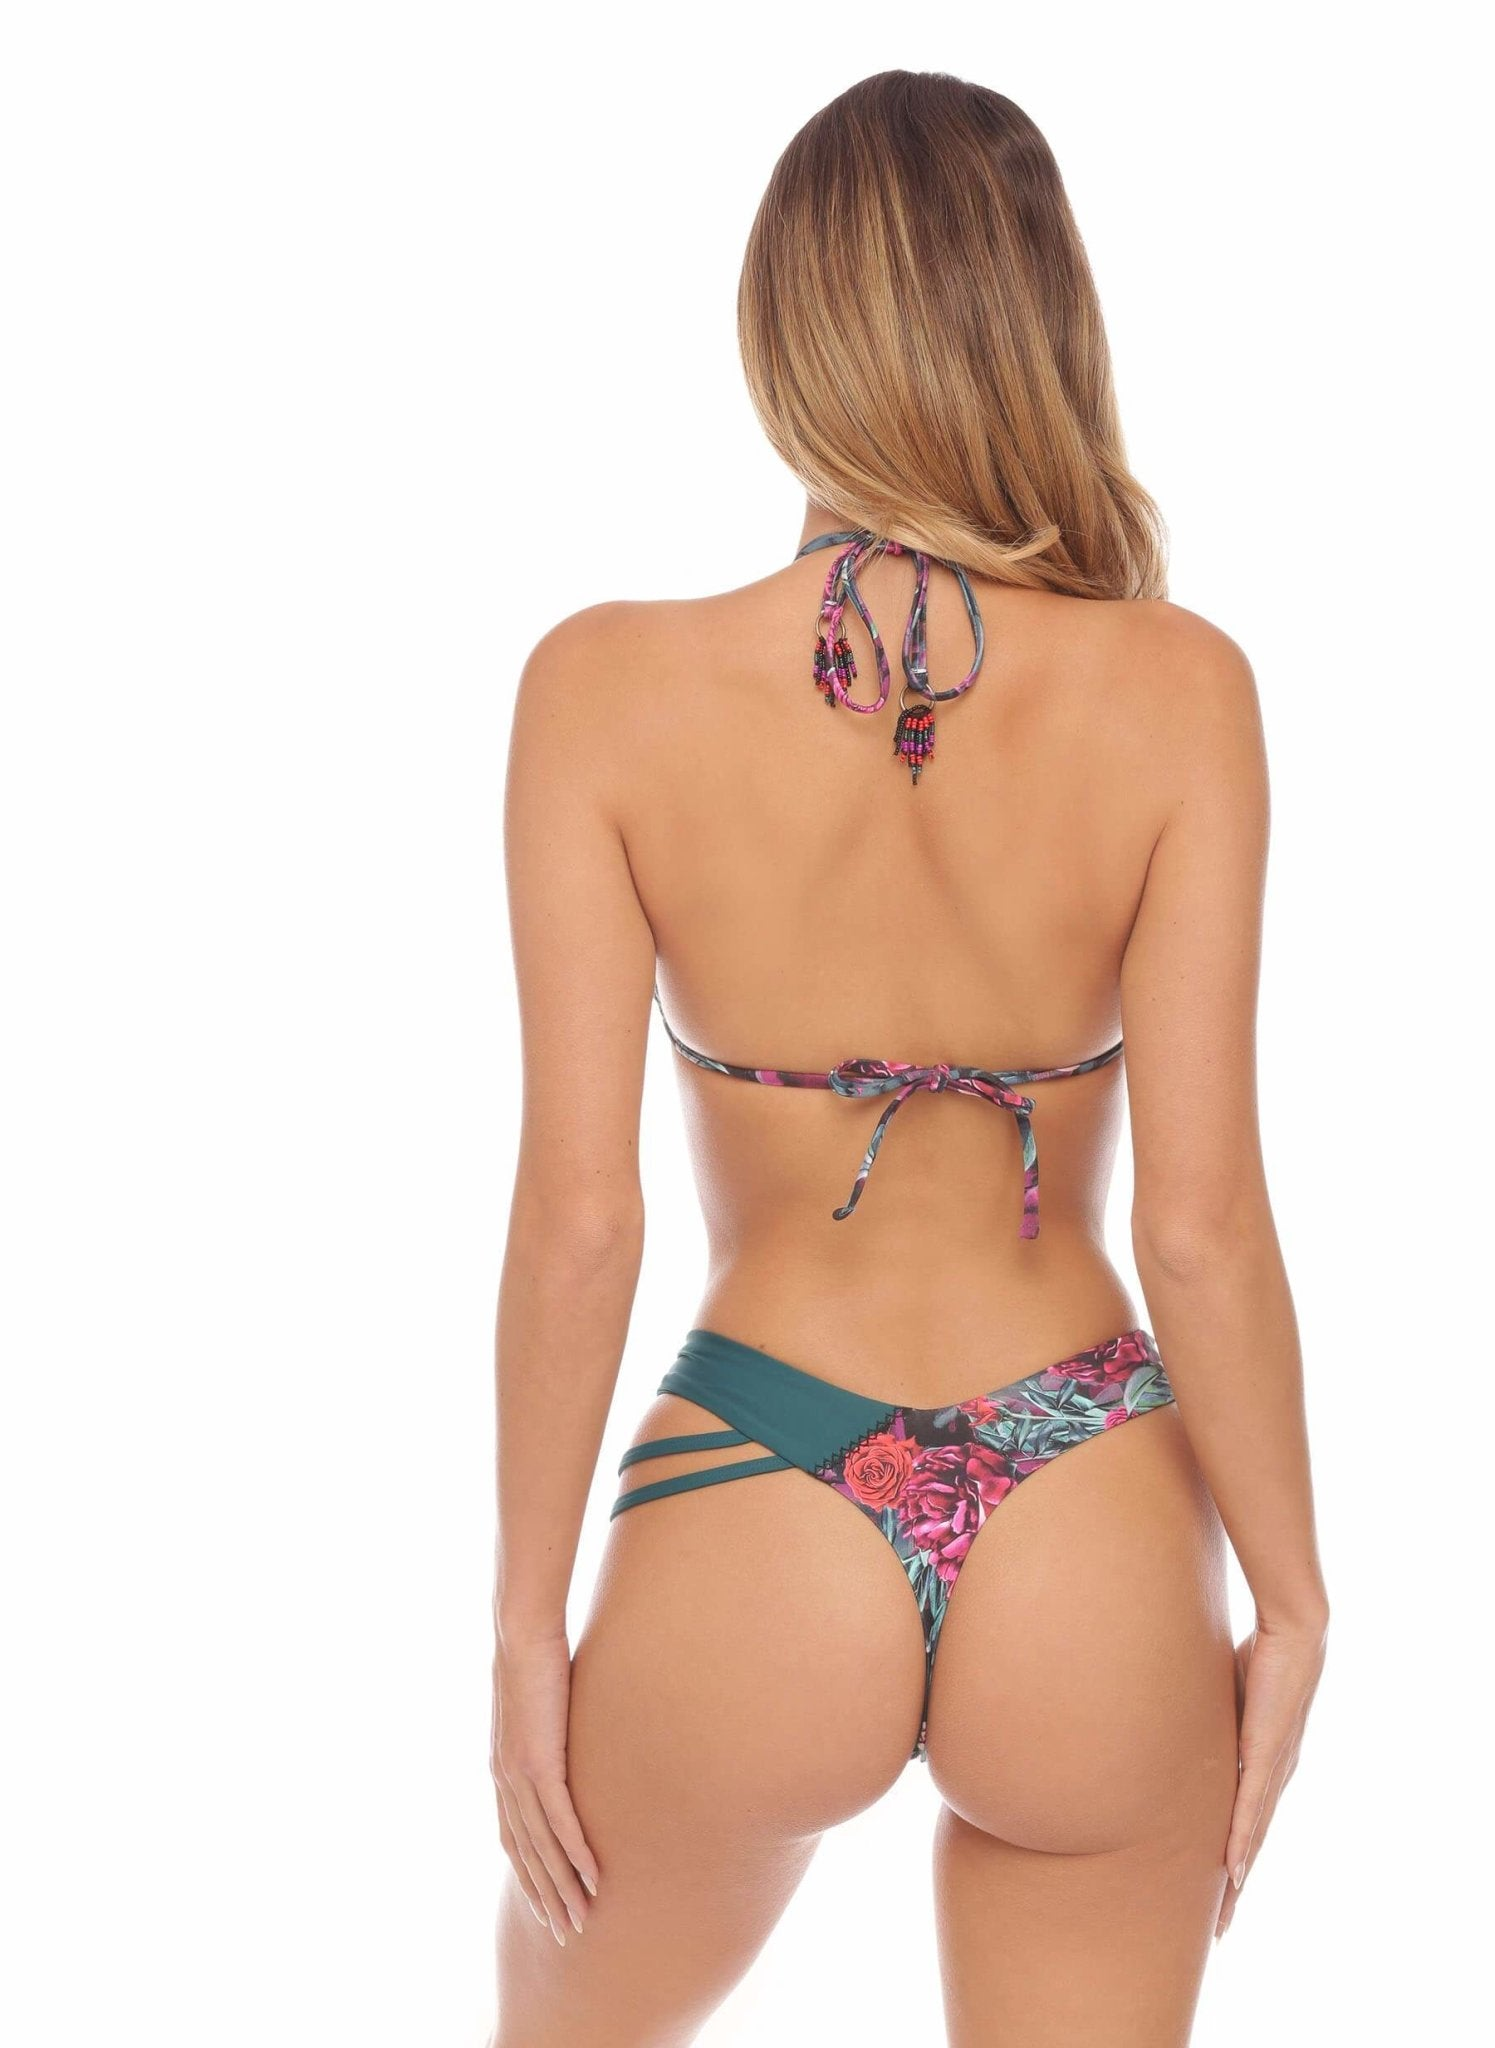 Cali High Cut Bottoms - Petrol - Salty Mermaid Swim